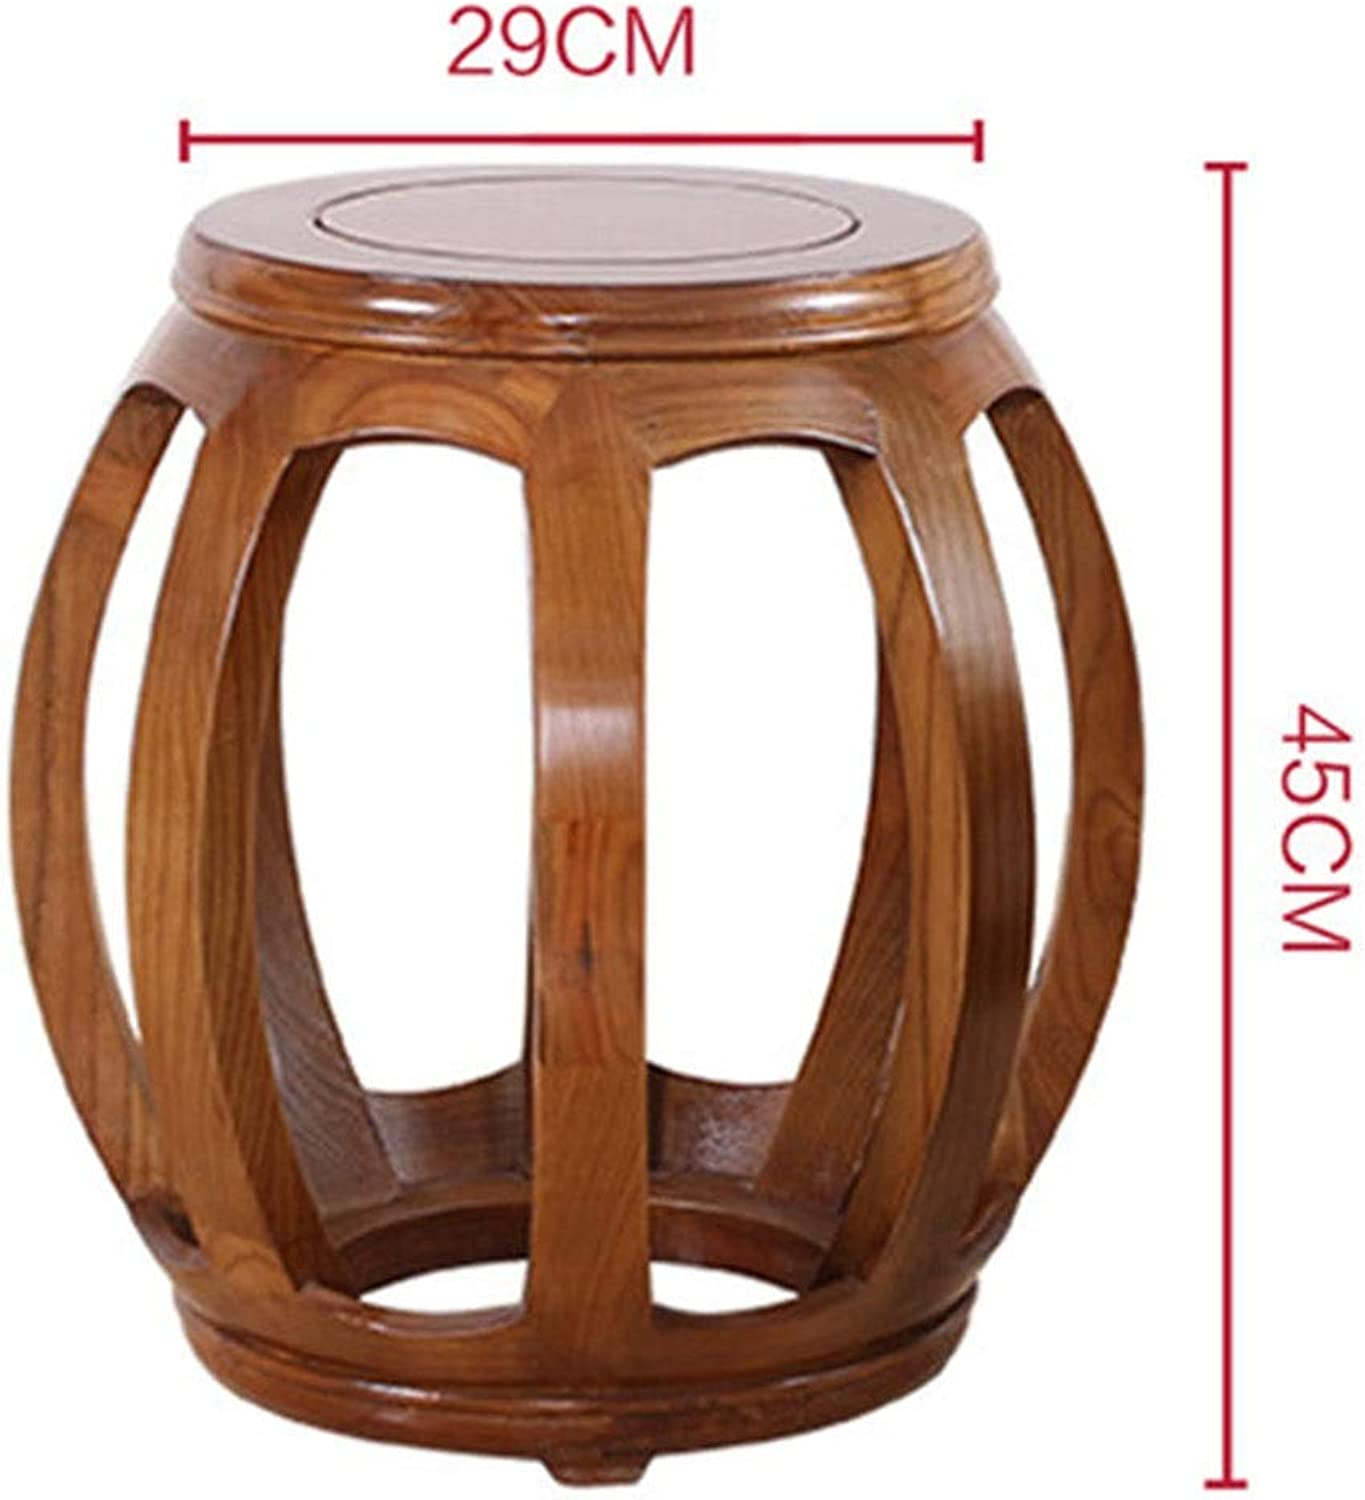 B.YDCM Wooden Bench- Home Stool Solid Wood Drum Stool Eucalyptus shoes Bench General Stool Stool Stool Guzheng Bench Classical - Wood Bench (color   B)